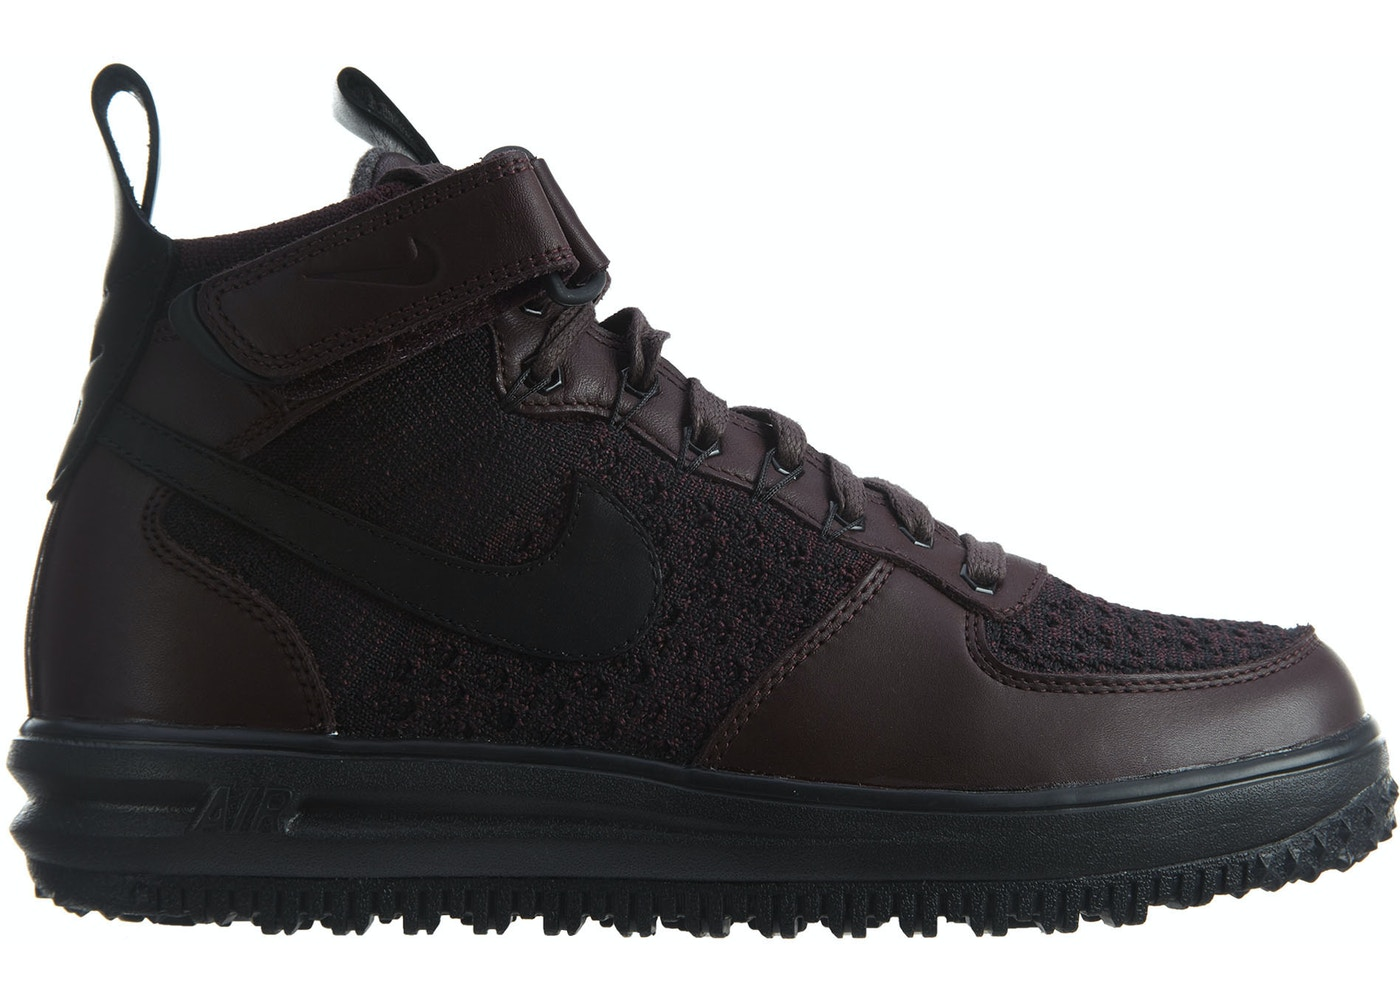 low priced 71f8e 46a56 Nike Lunar Force 1 Flyknit Workboot Deep Burgundy Black - 855984-600